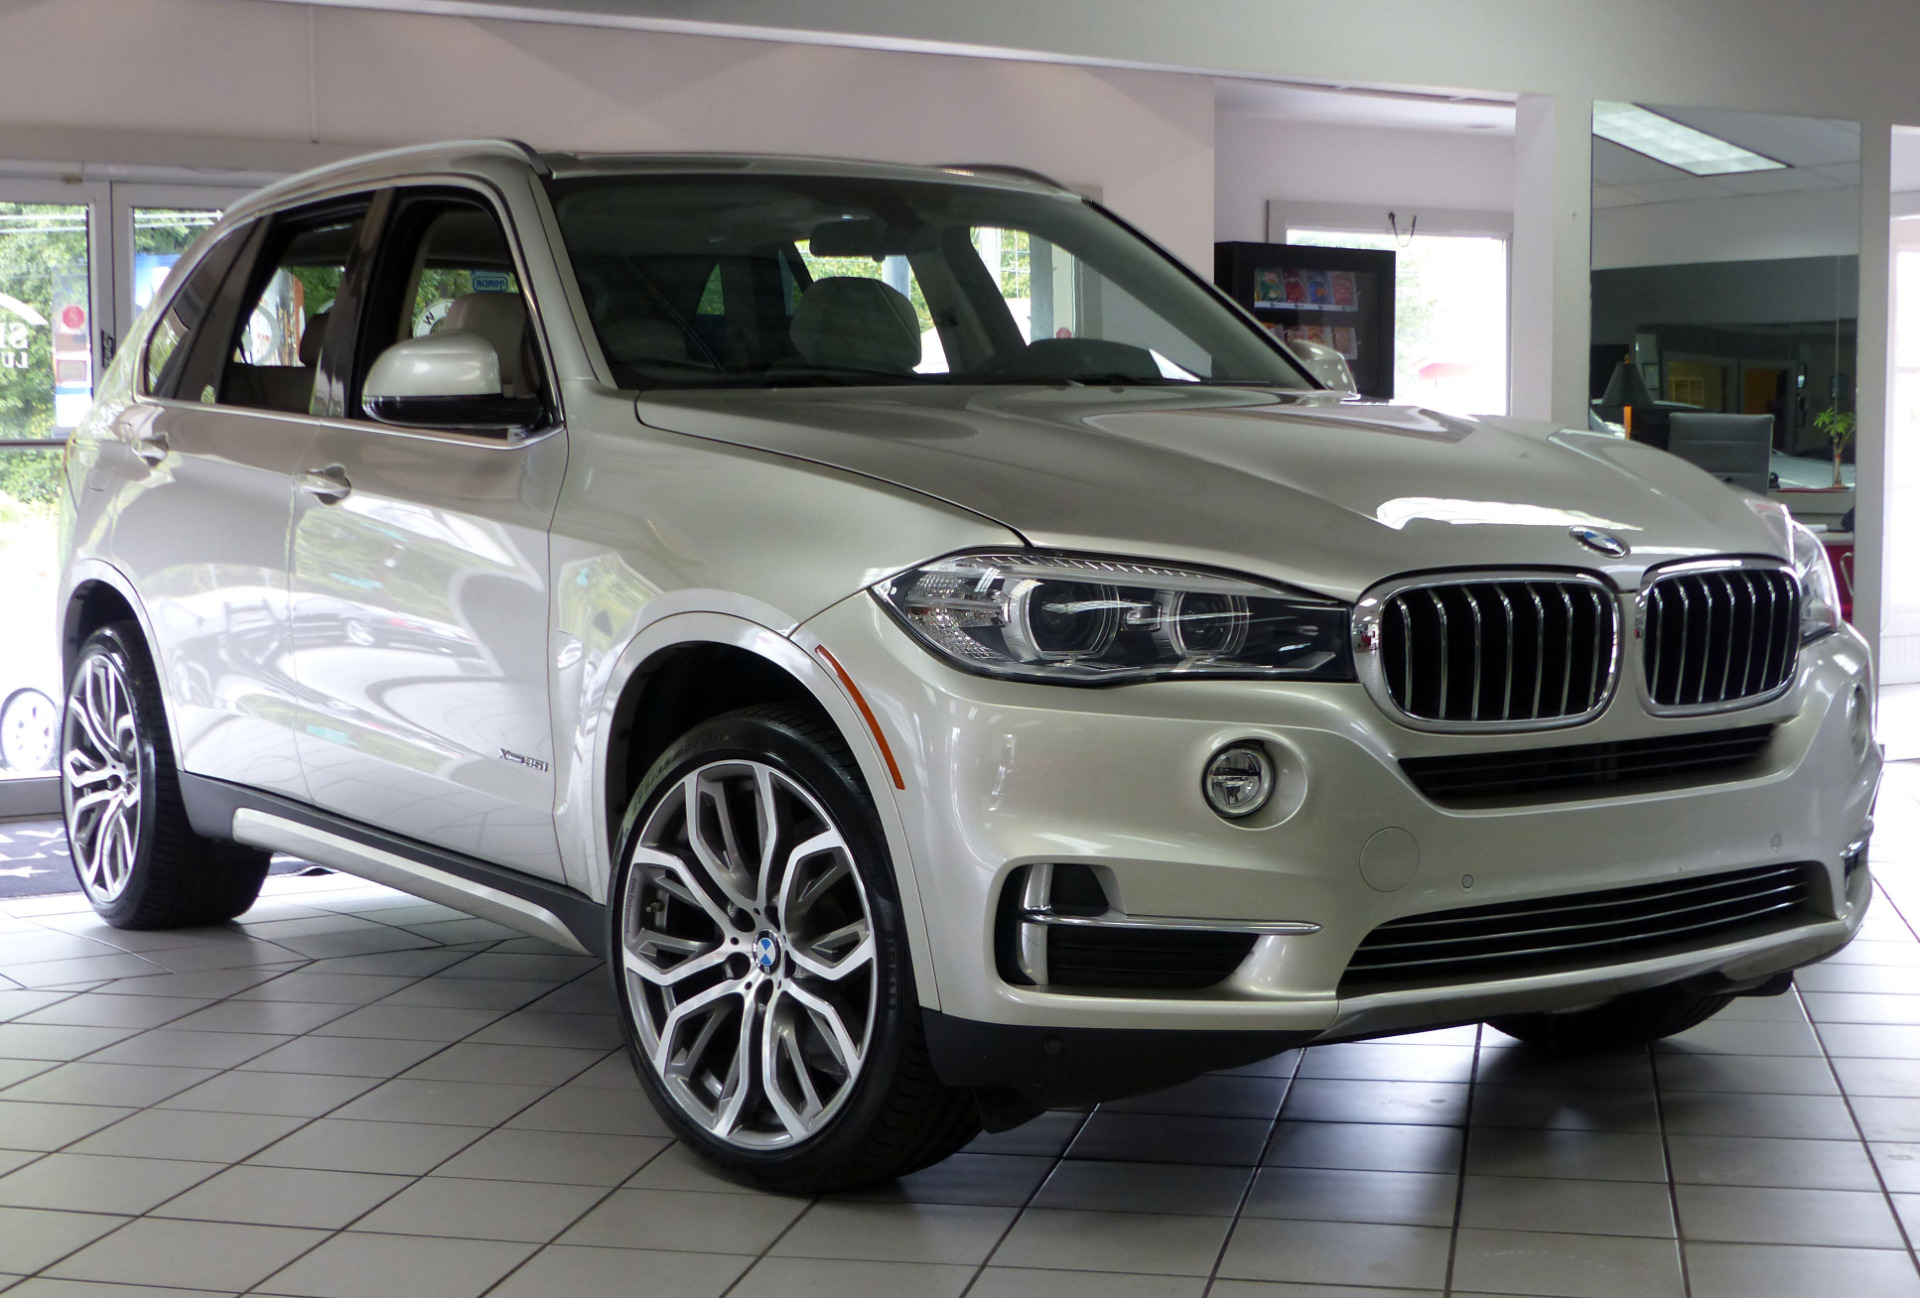 used 2014 bmw x5 xdrive35i marietta ga. Black Bedroom Furniture Sets. Home Design Ideas